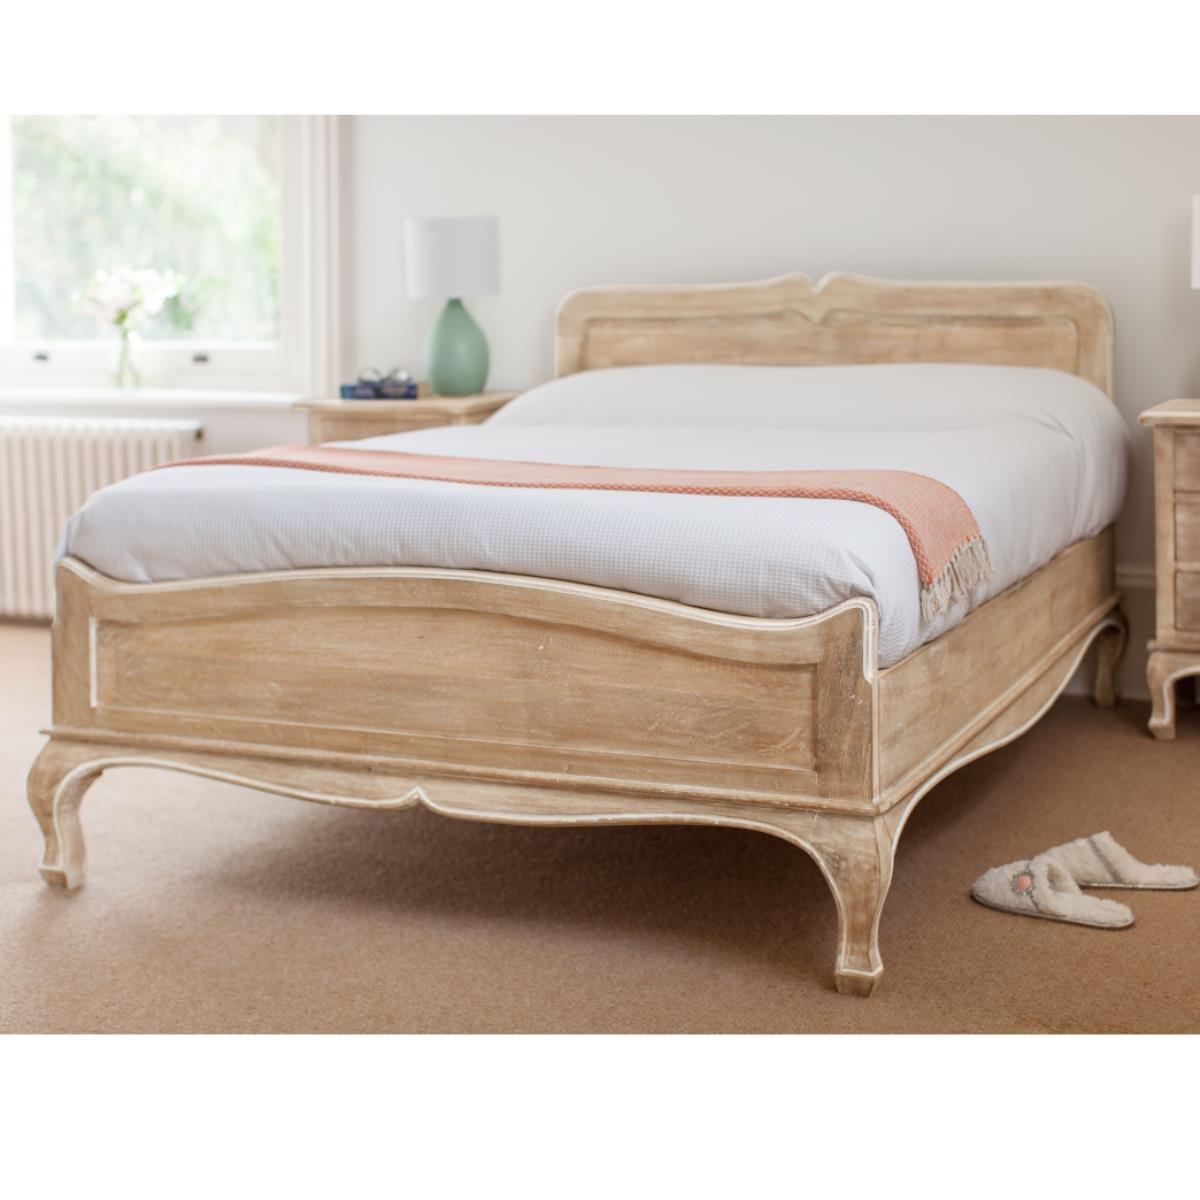 Bed queen king size wooden